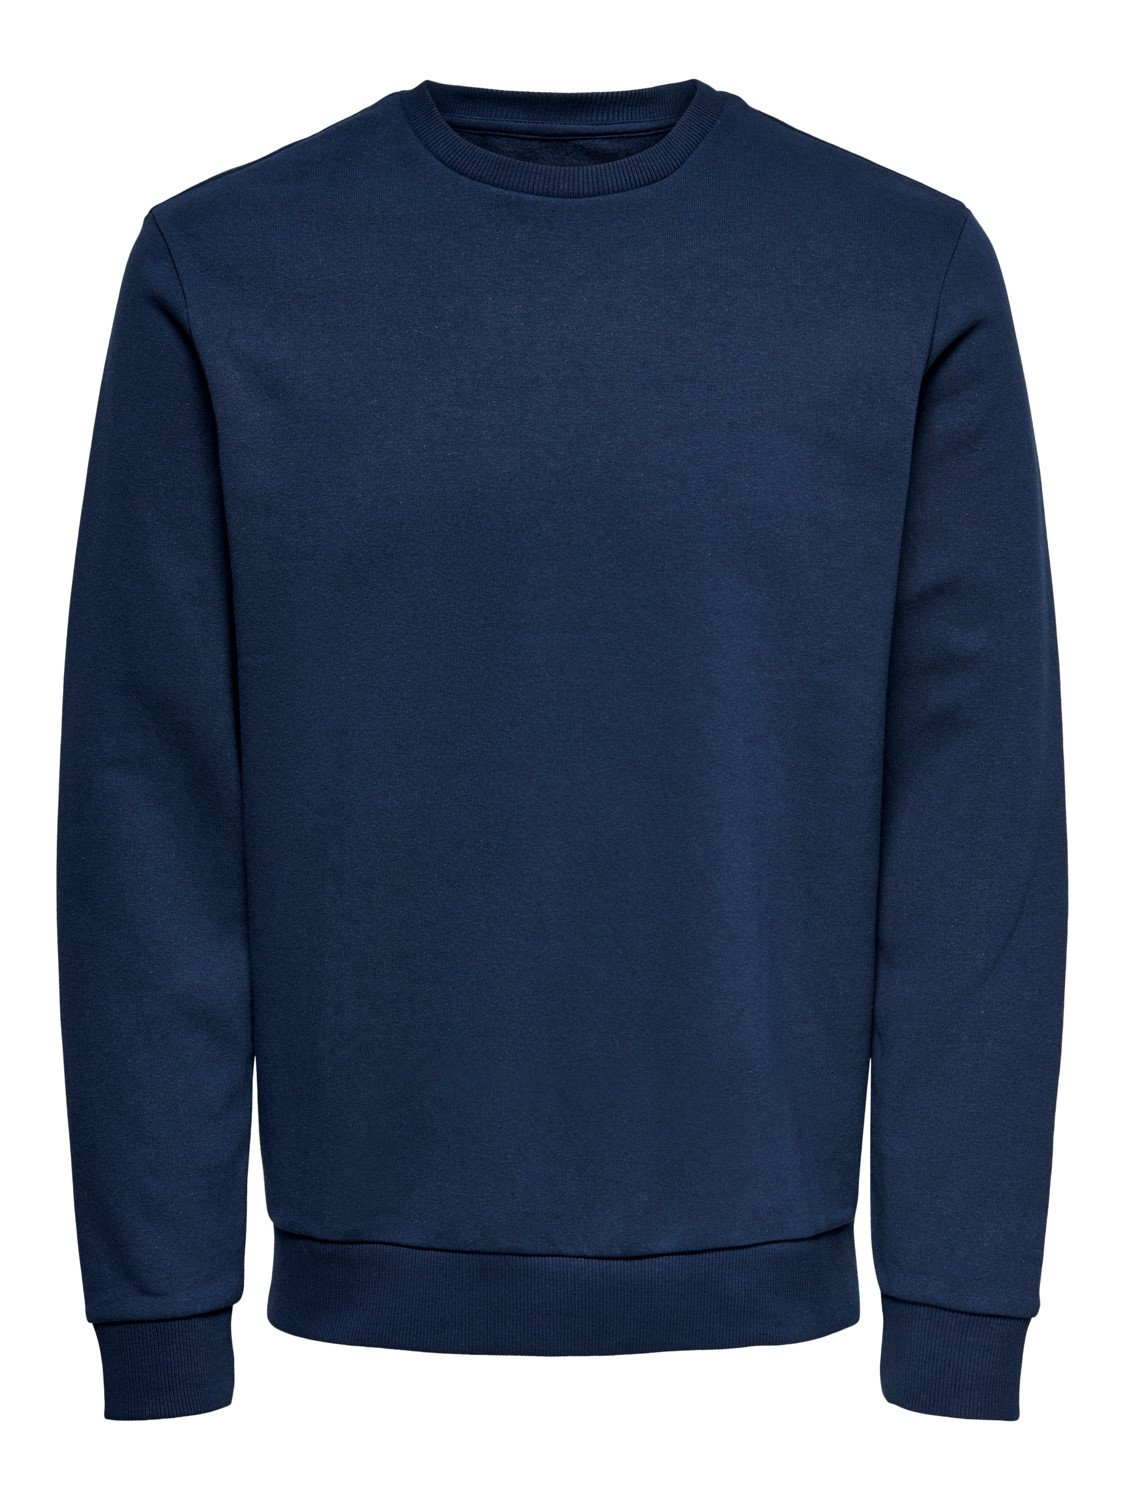 ONLY & SONS - ONSCERES CREW NECK NAVY | GATE36 HOBRO